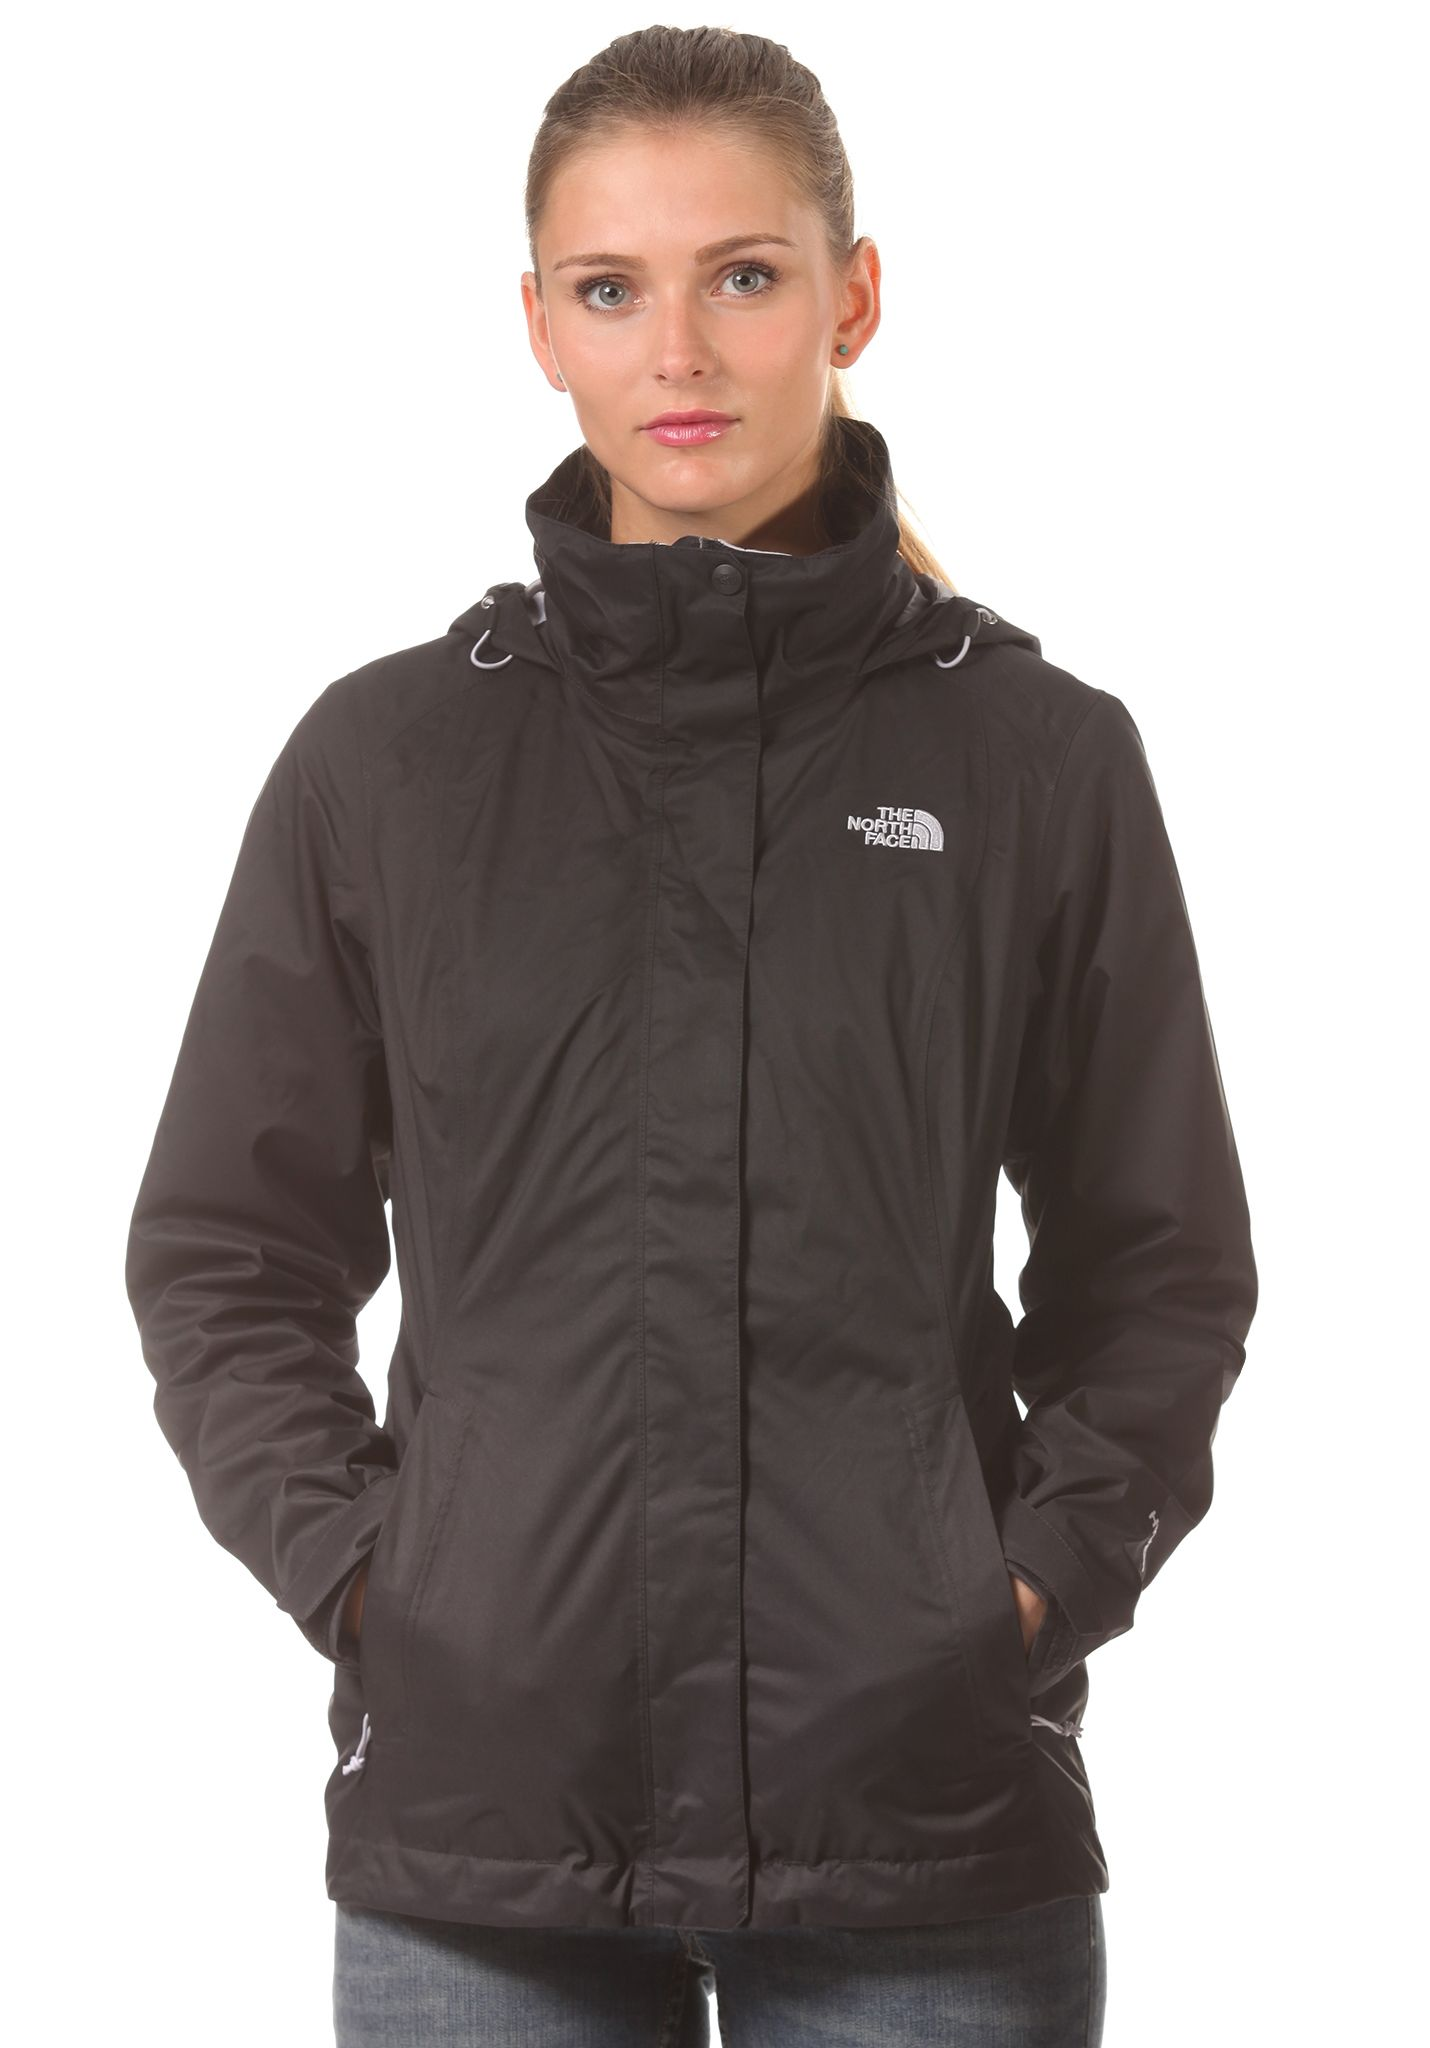 00c3e24befbdc THE NORTH FACE Evolve II Triclimate - Chaqueta funcional para Mujeres -  Negro - Planet Sports